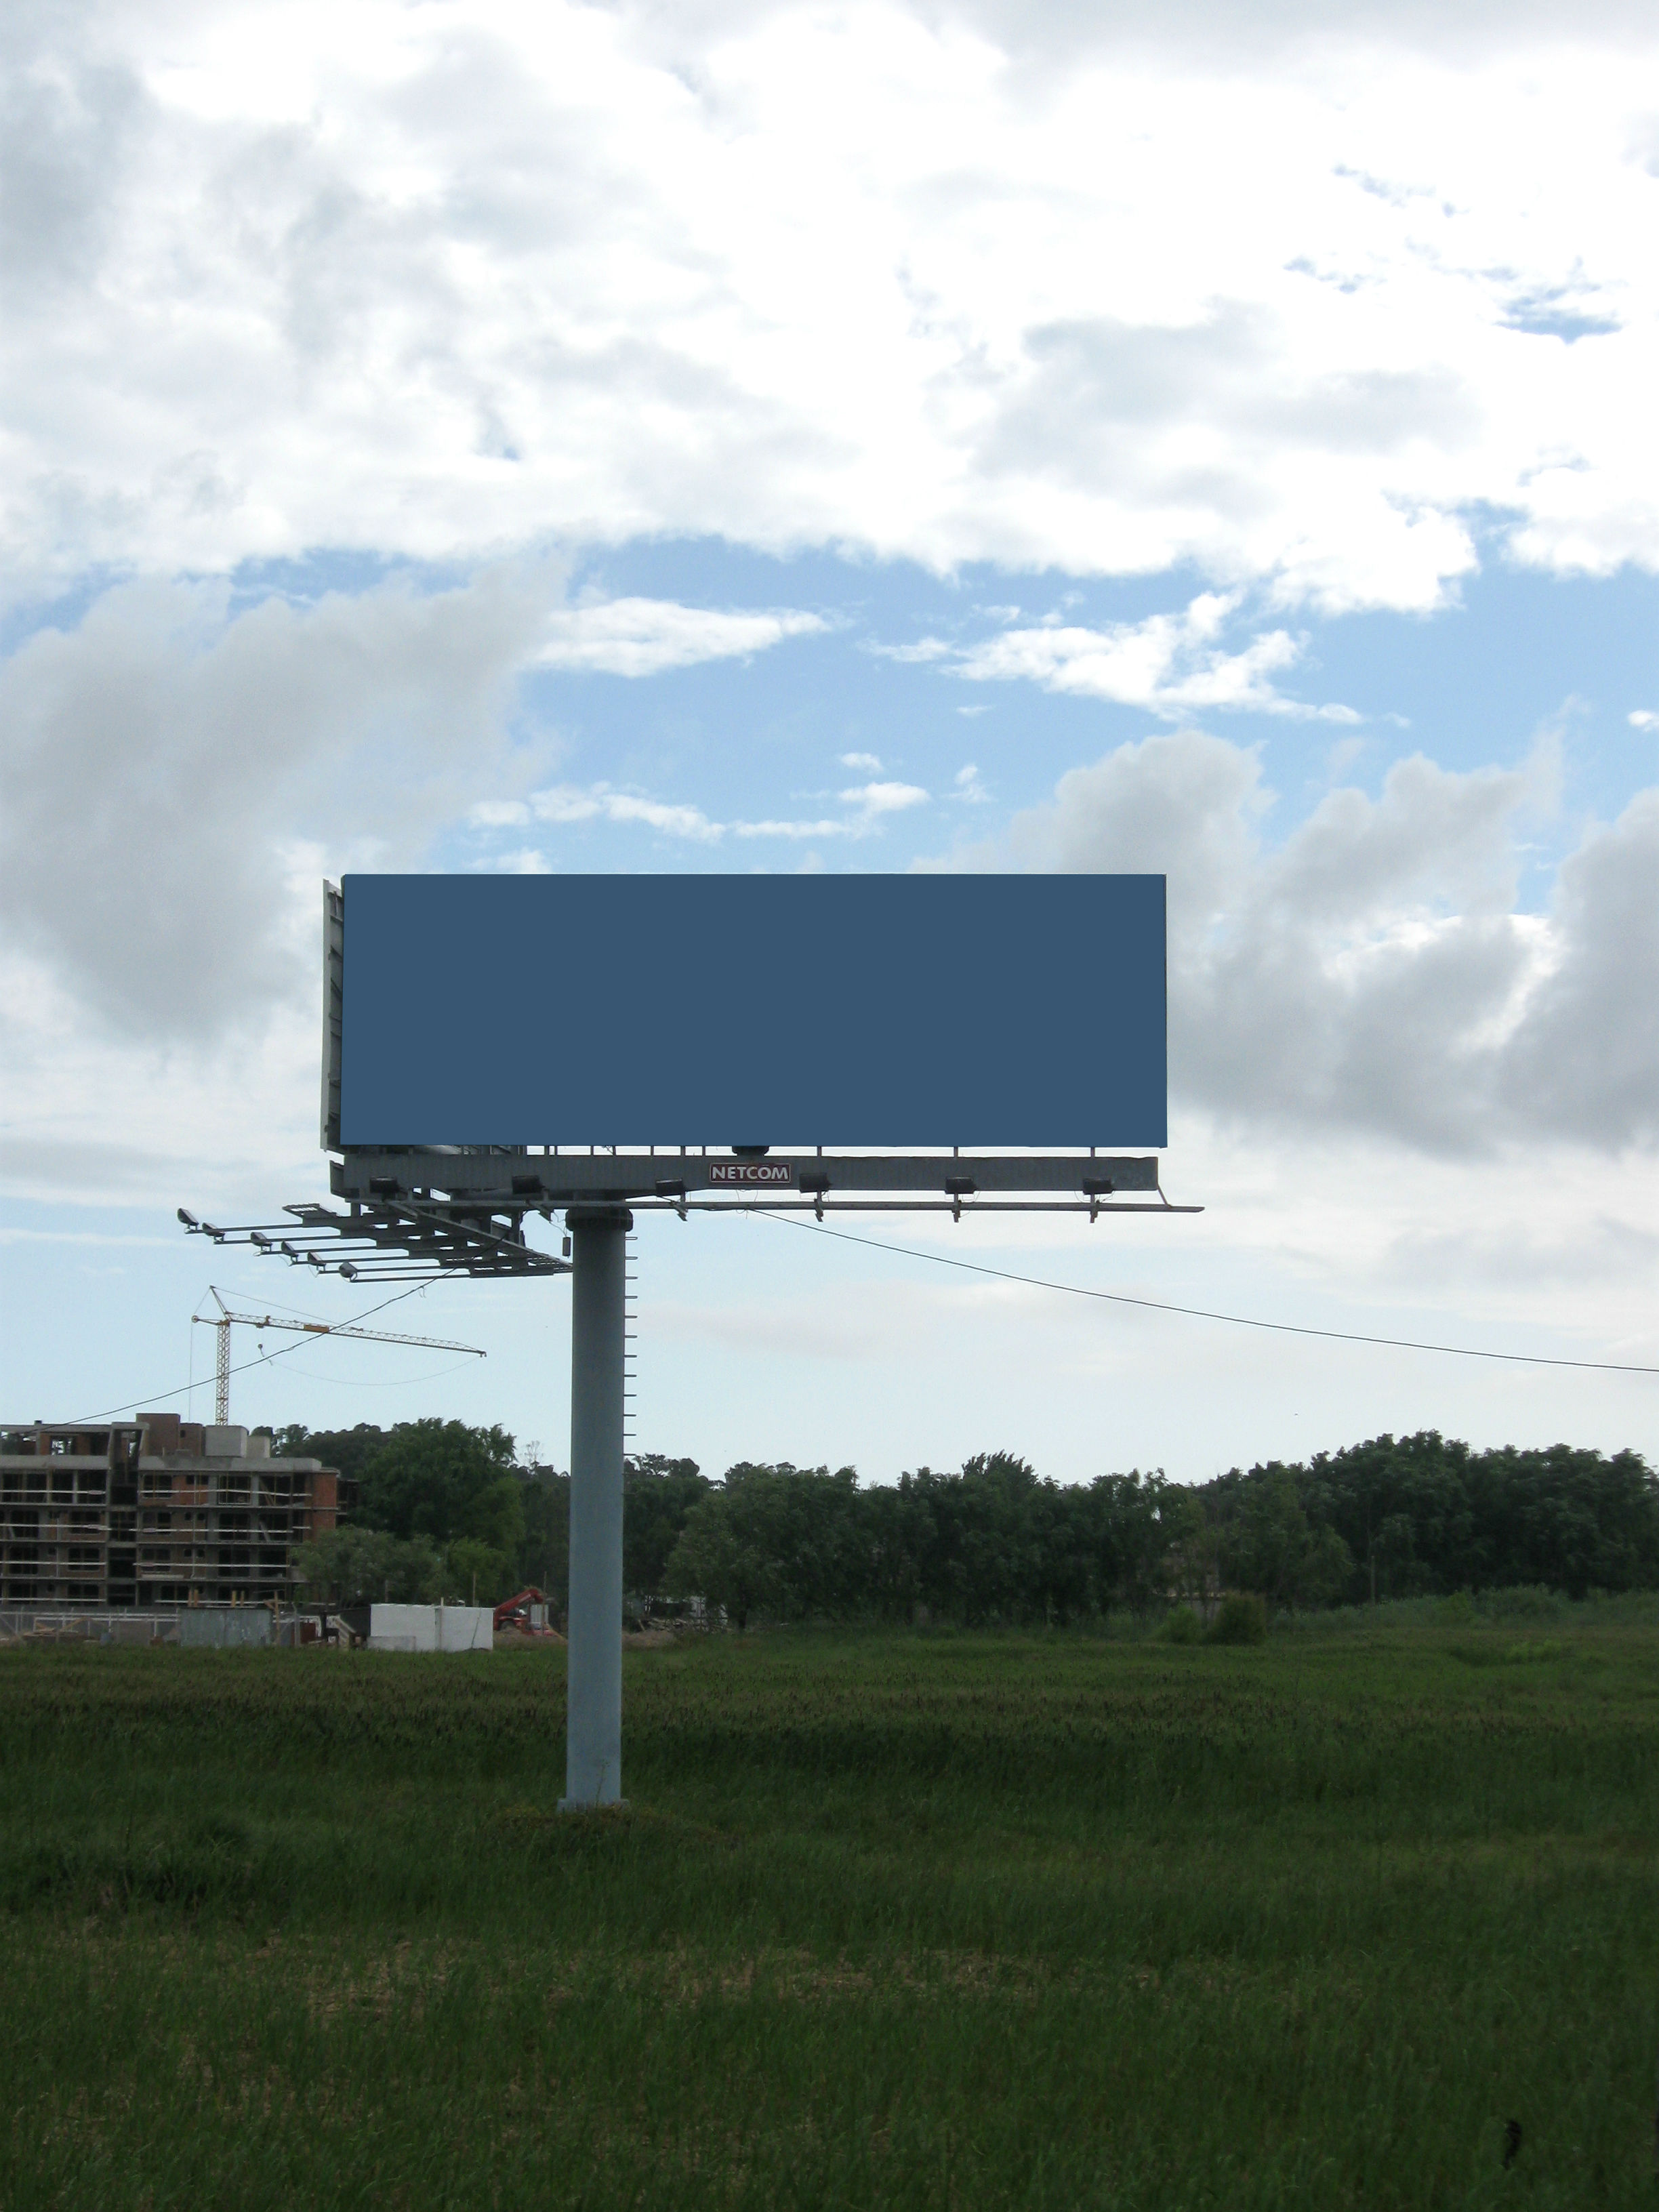 Third Circuit Rules NJ Municipality Can Ban All Billboards